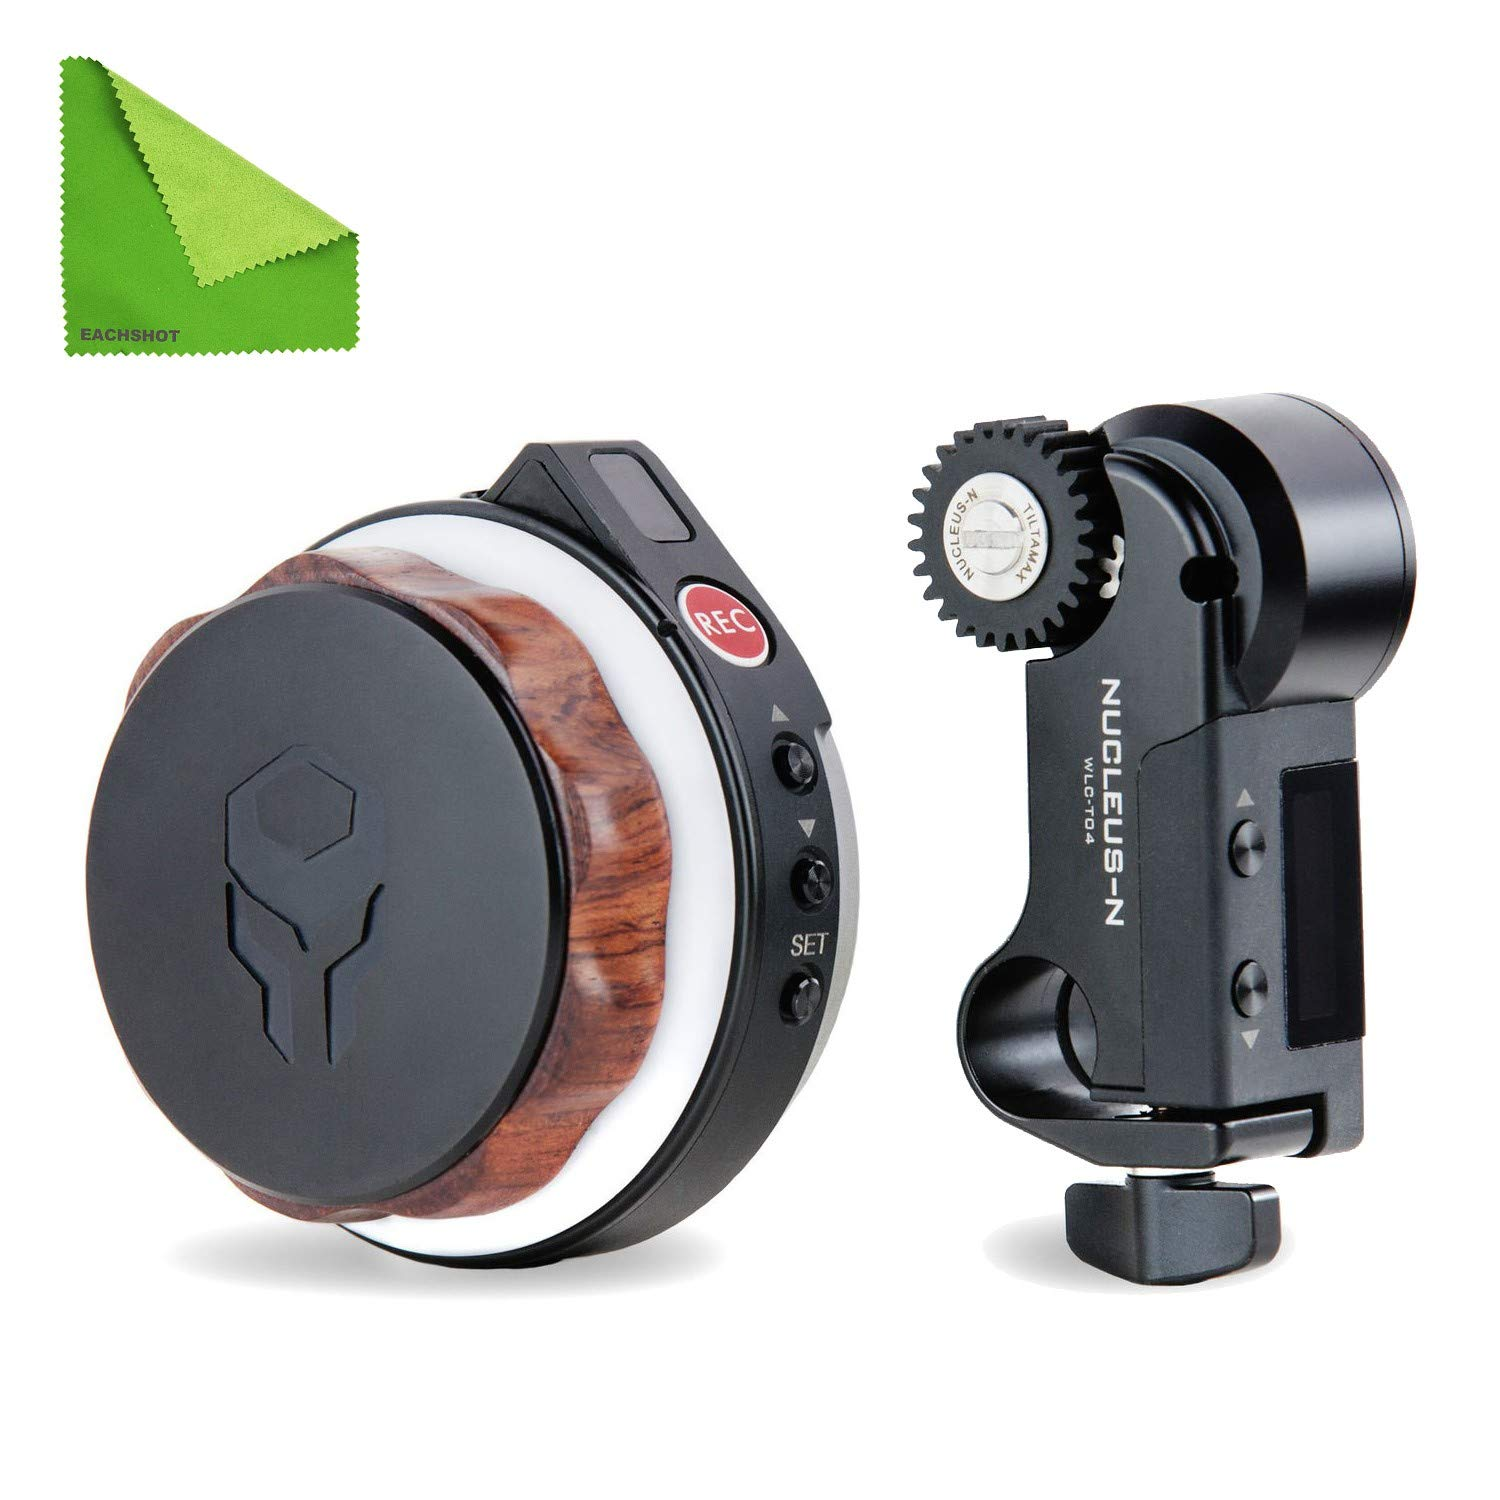 Tilta Nucleus-Nano Wireless Focus Control System to Wirelessly Control The Focus of Most DSLR, Mirrorless, or Cine-Style Lenses on Cage, Gimbal Such As Ronin S by Tilta